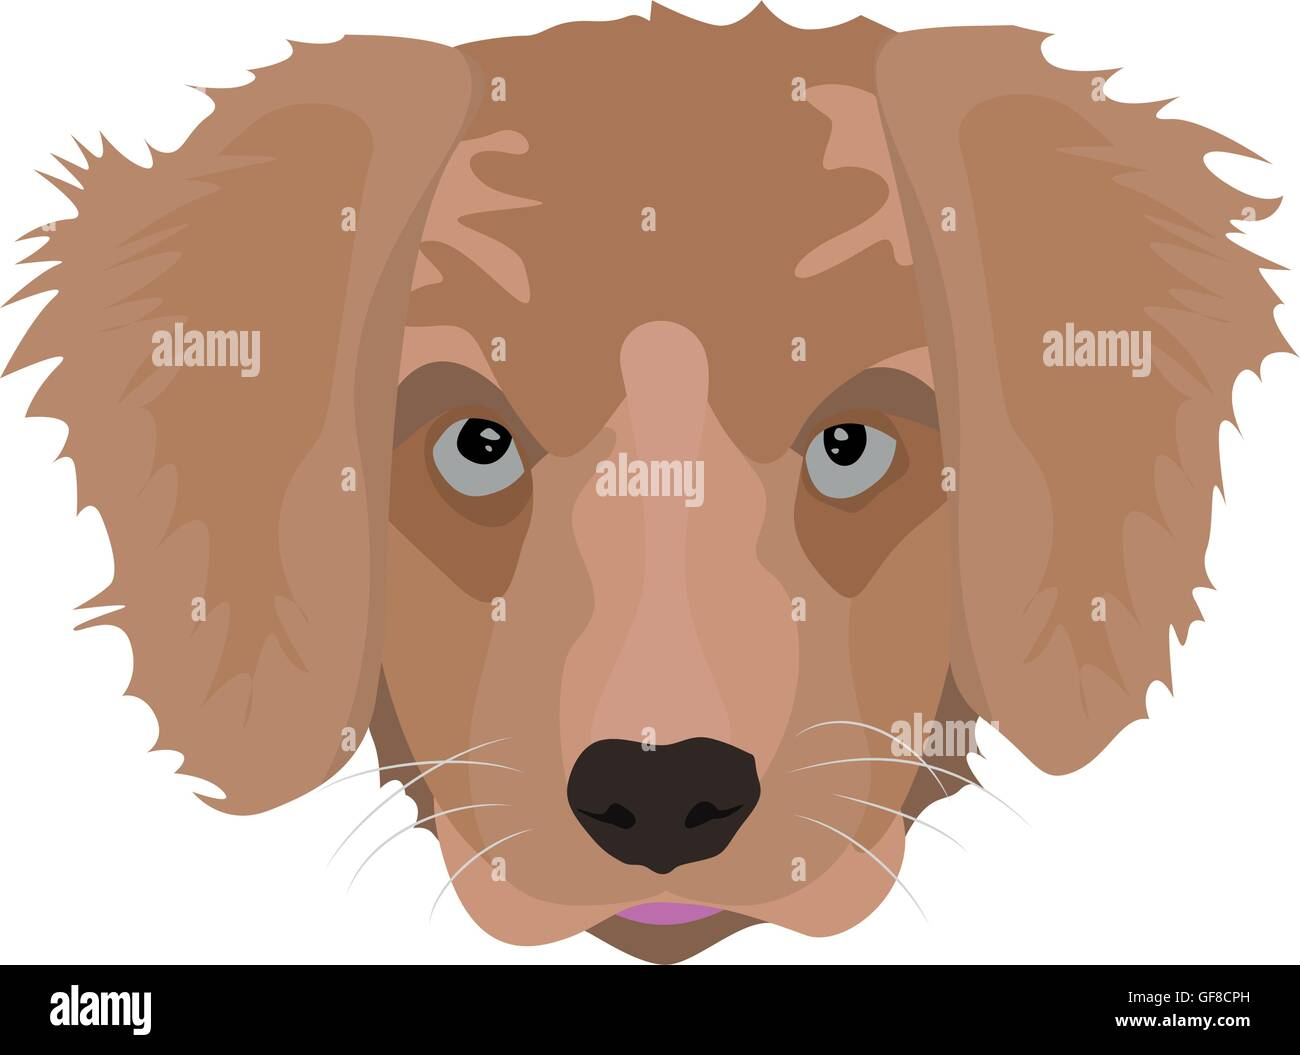 Illustration Golden Retriever Puppy For Creative Use In Graphic